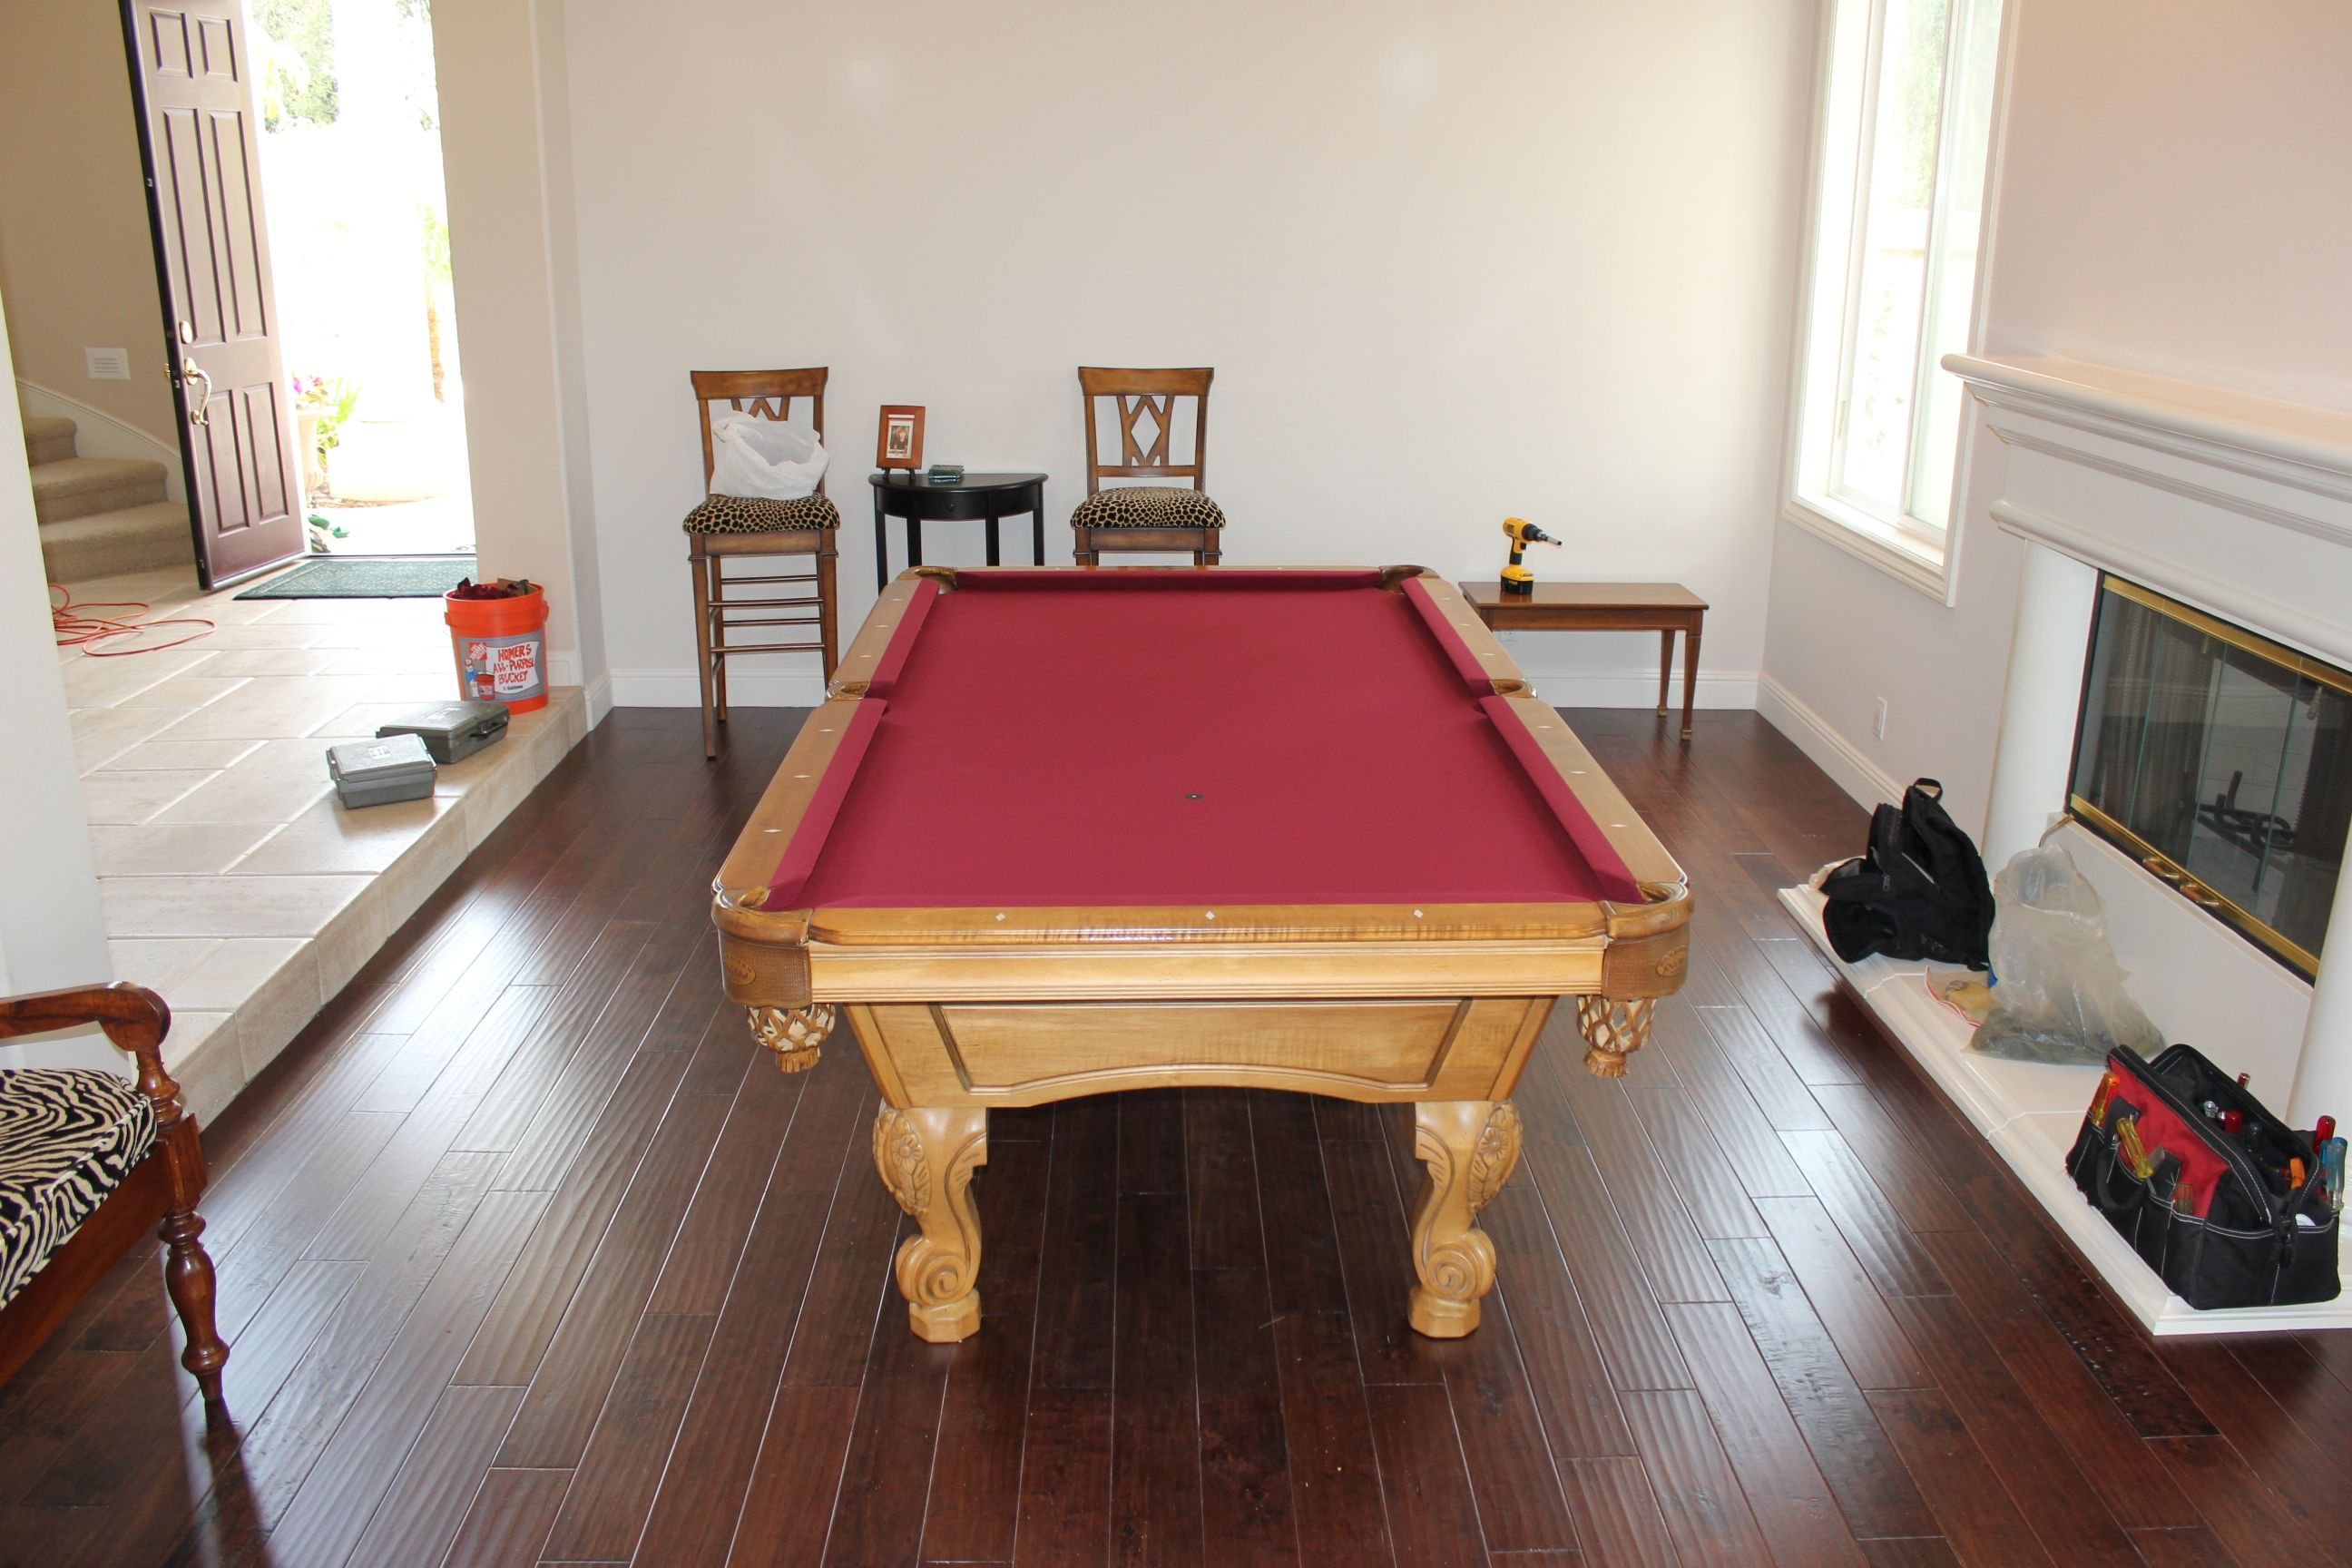 Best 25+ Olhausen Pool Table Ideas On Pinterest | Pool Table Room, Pool  Table And Best Pool Tables